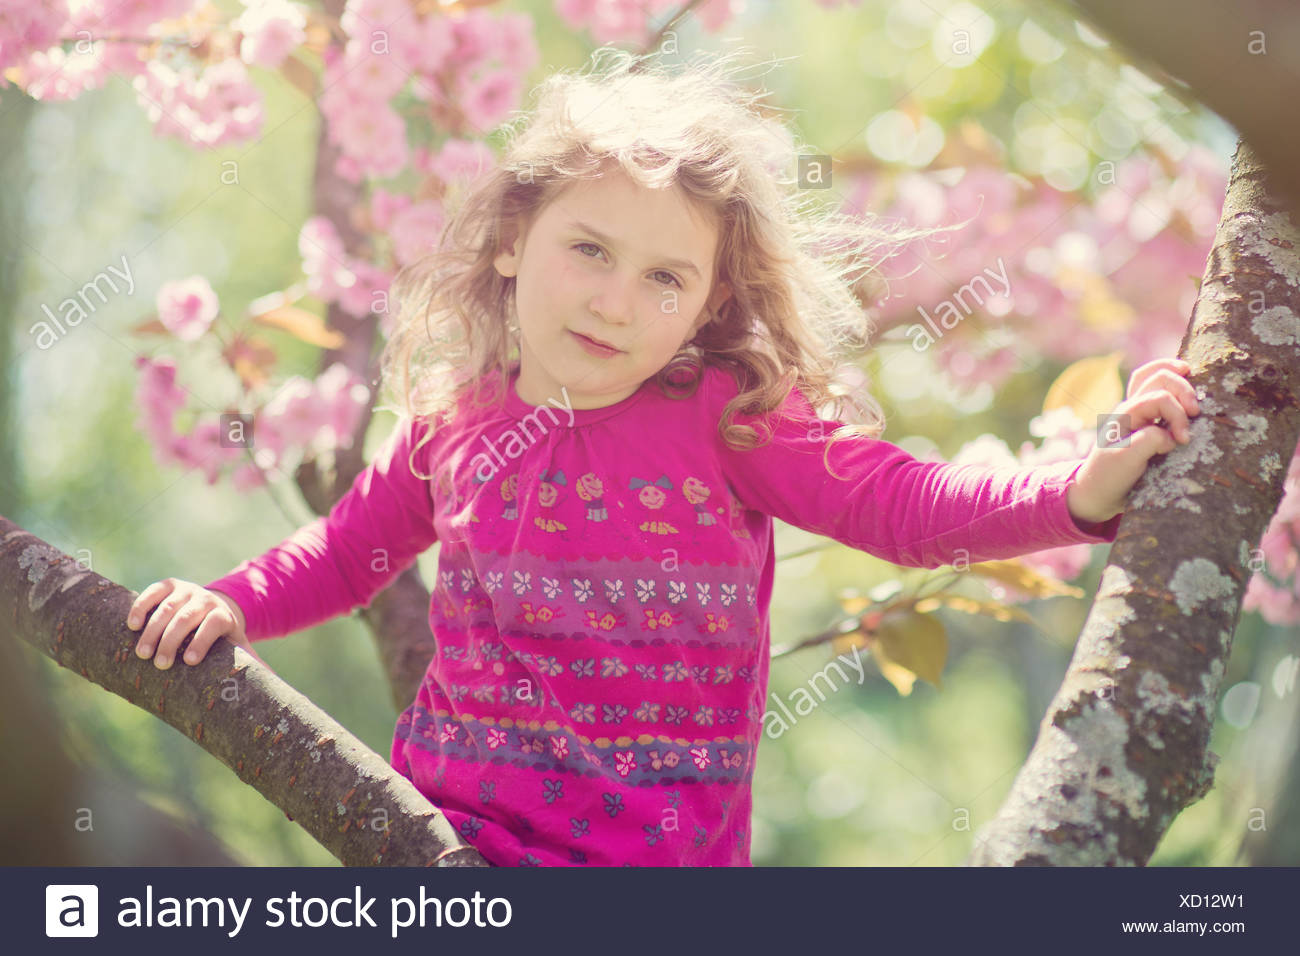 Young girl on the cherry blossom tree - Stock Image